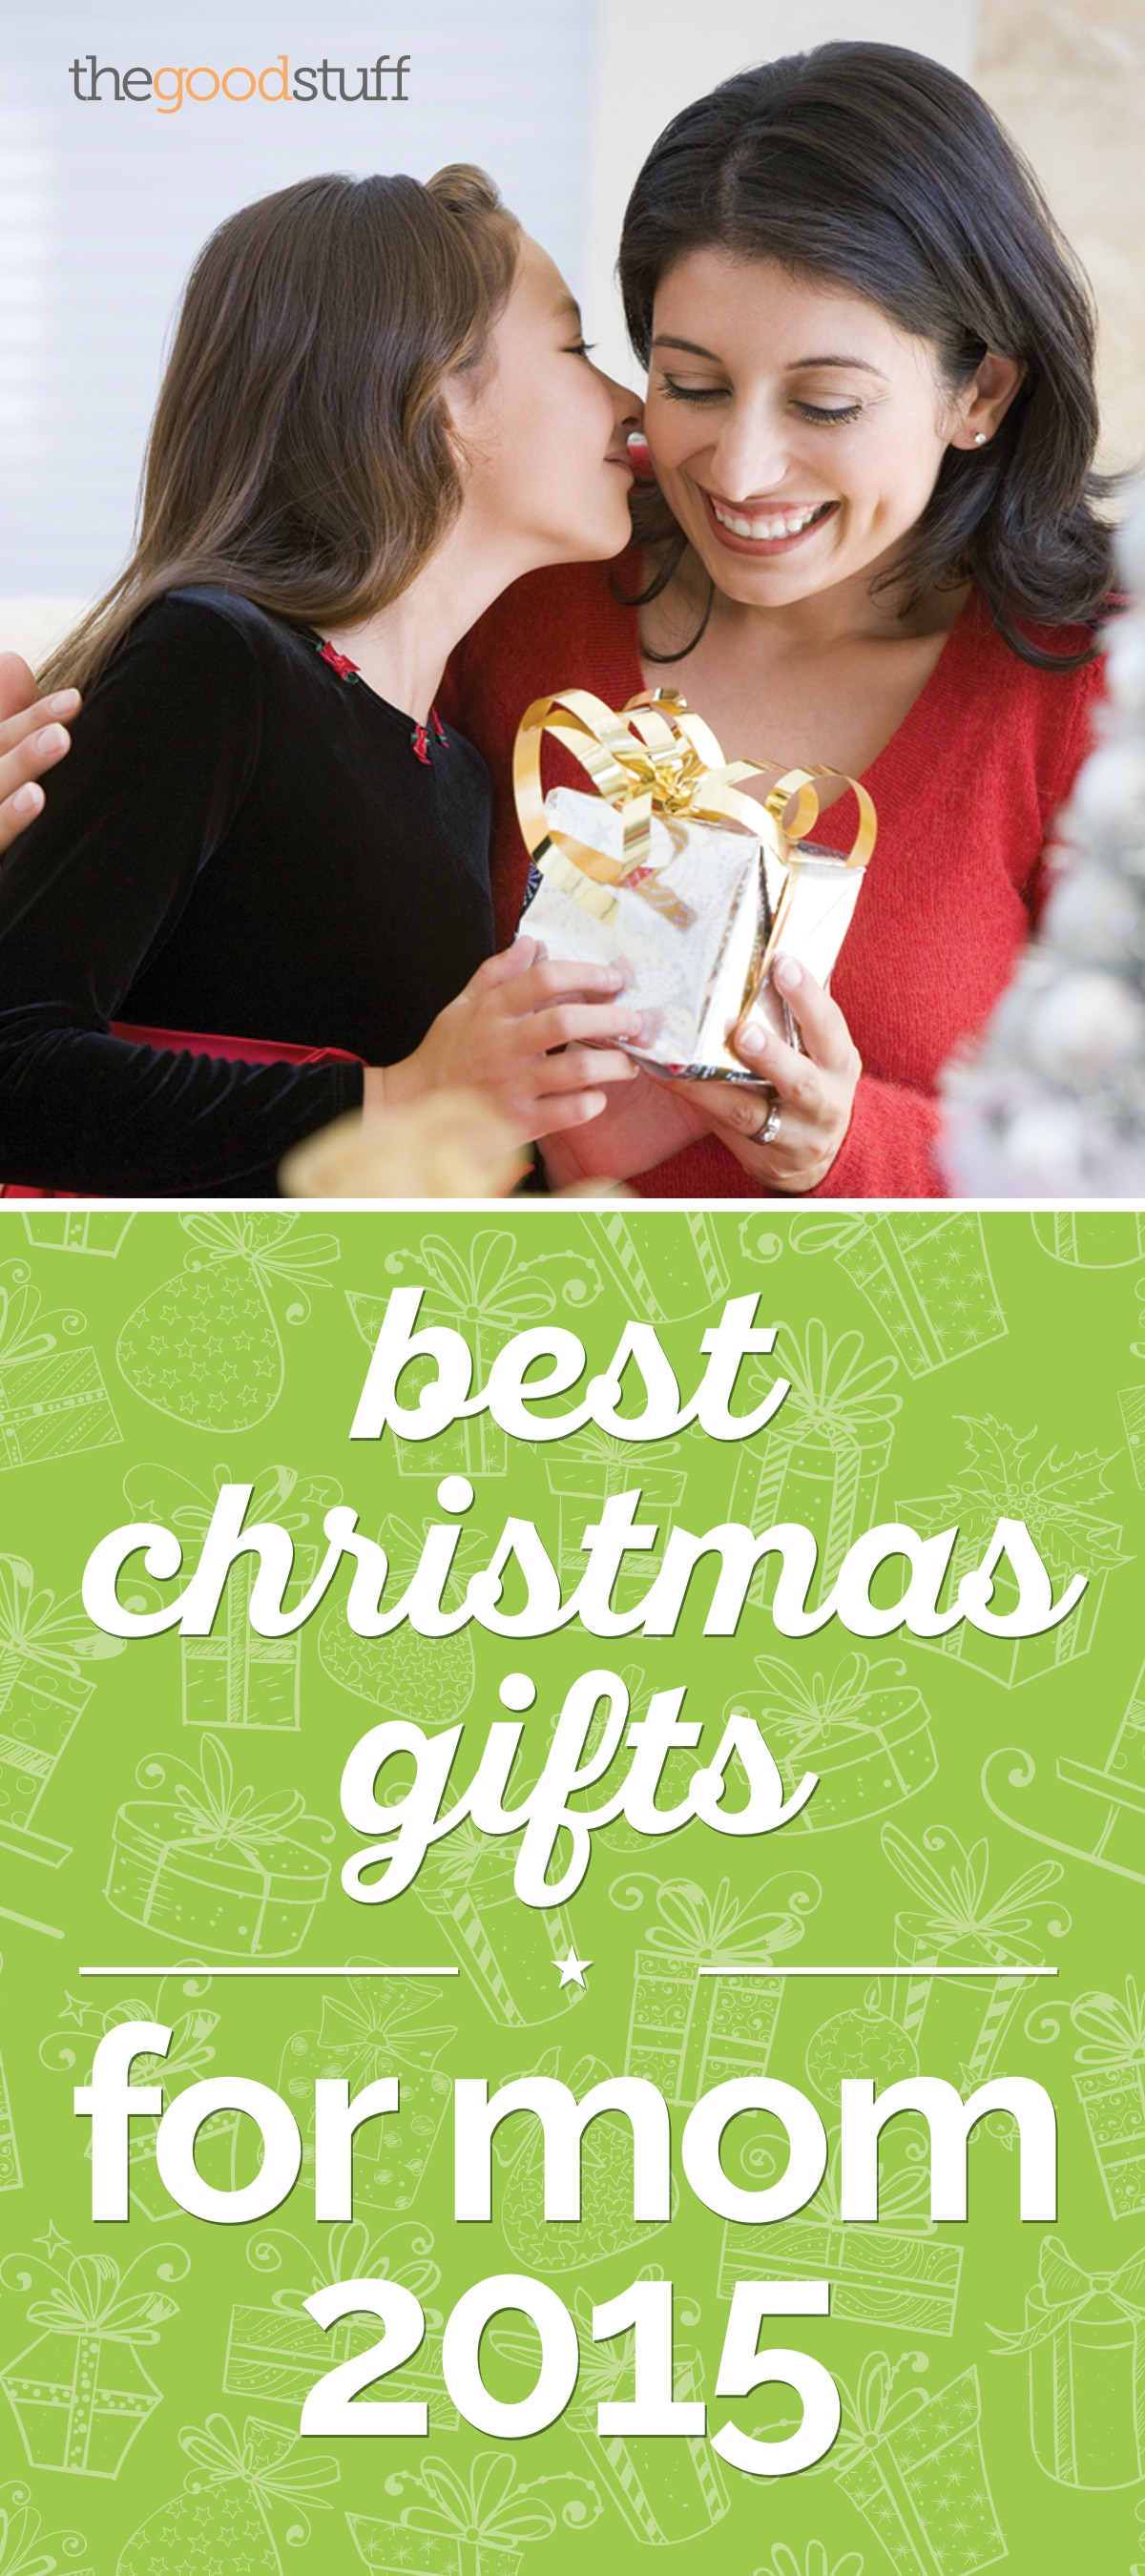 best-christmas-gifts-for-mom-2015